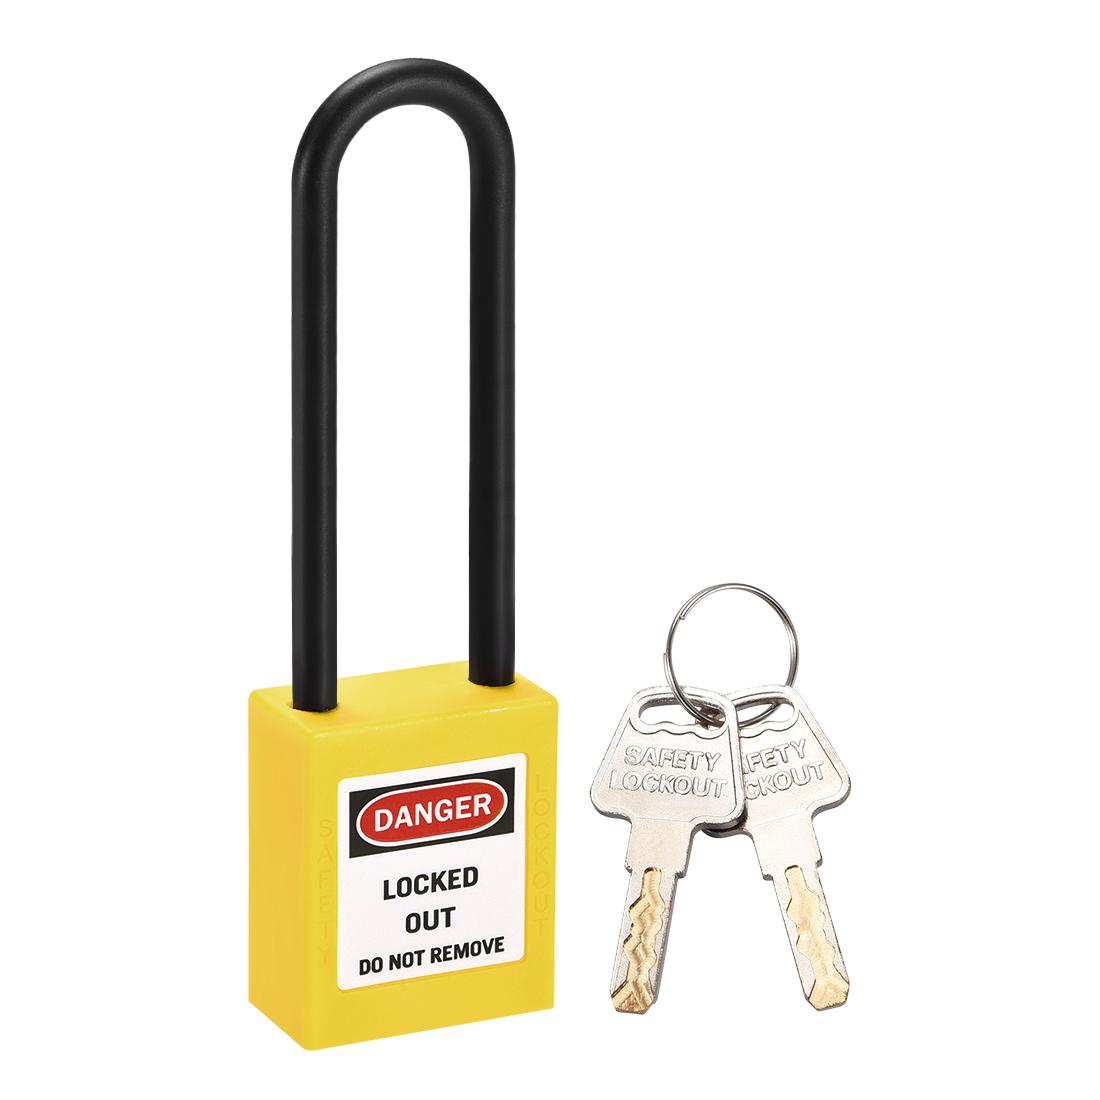 Lockout Tagout Locks 3 Inch Shackle Key Different Safety Padlock Plastic Yellow